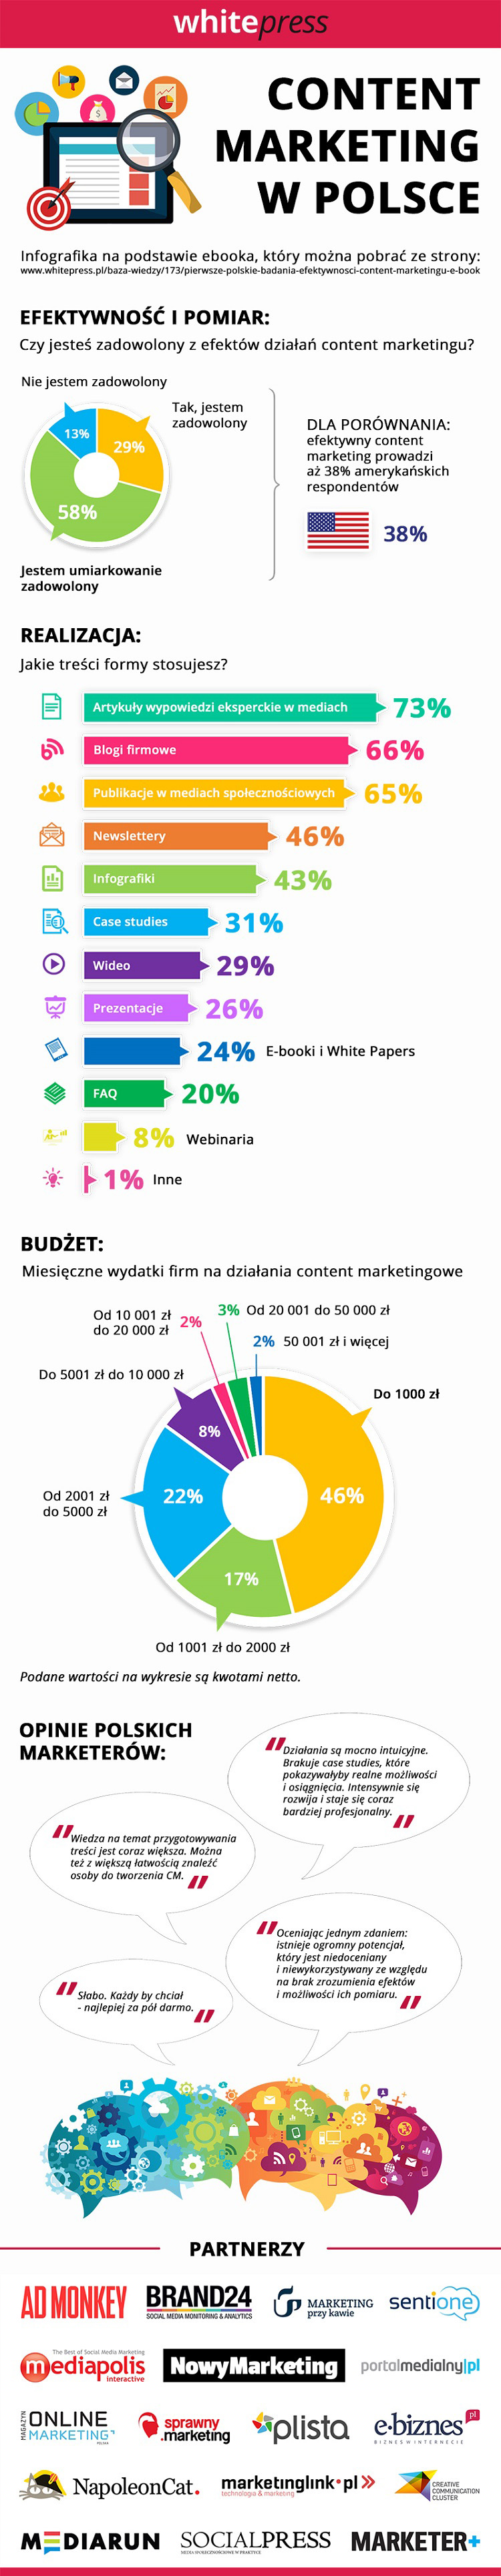 Infografika content marketing w Polsce